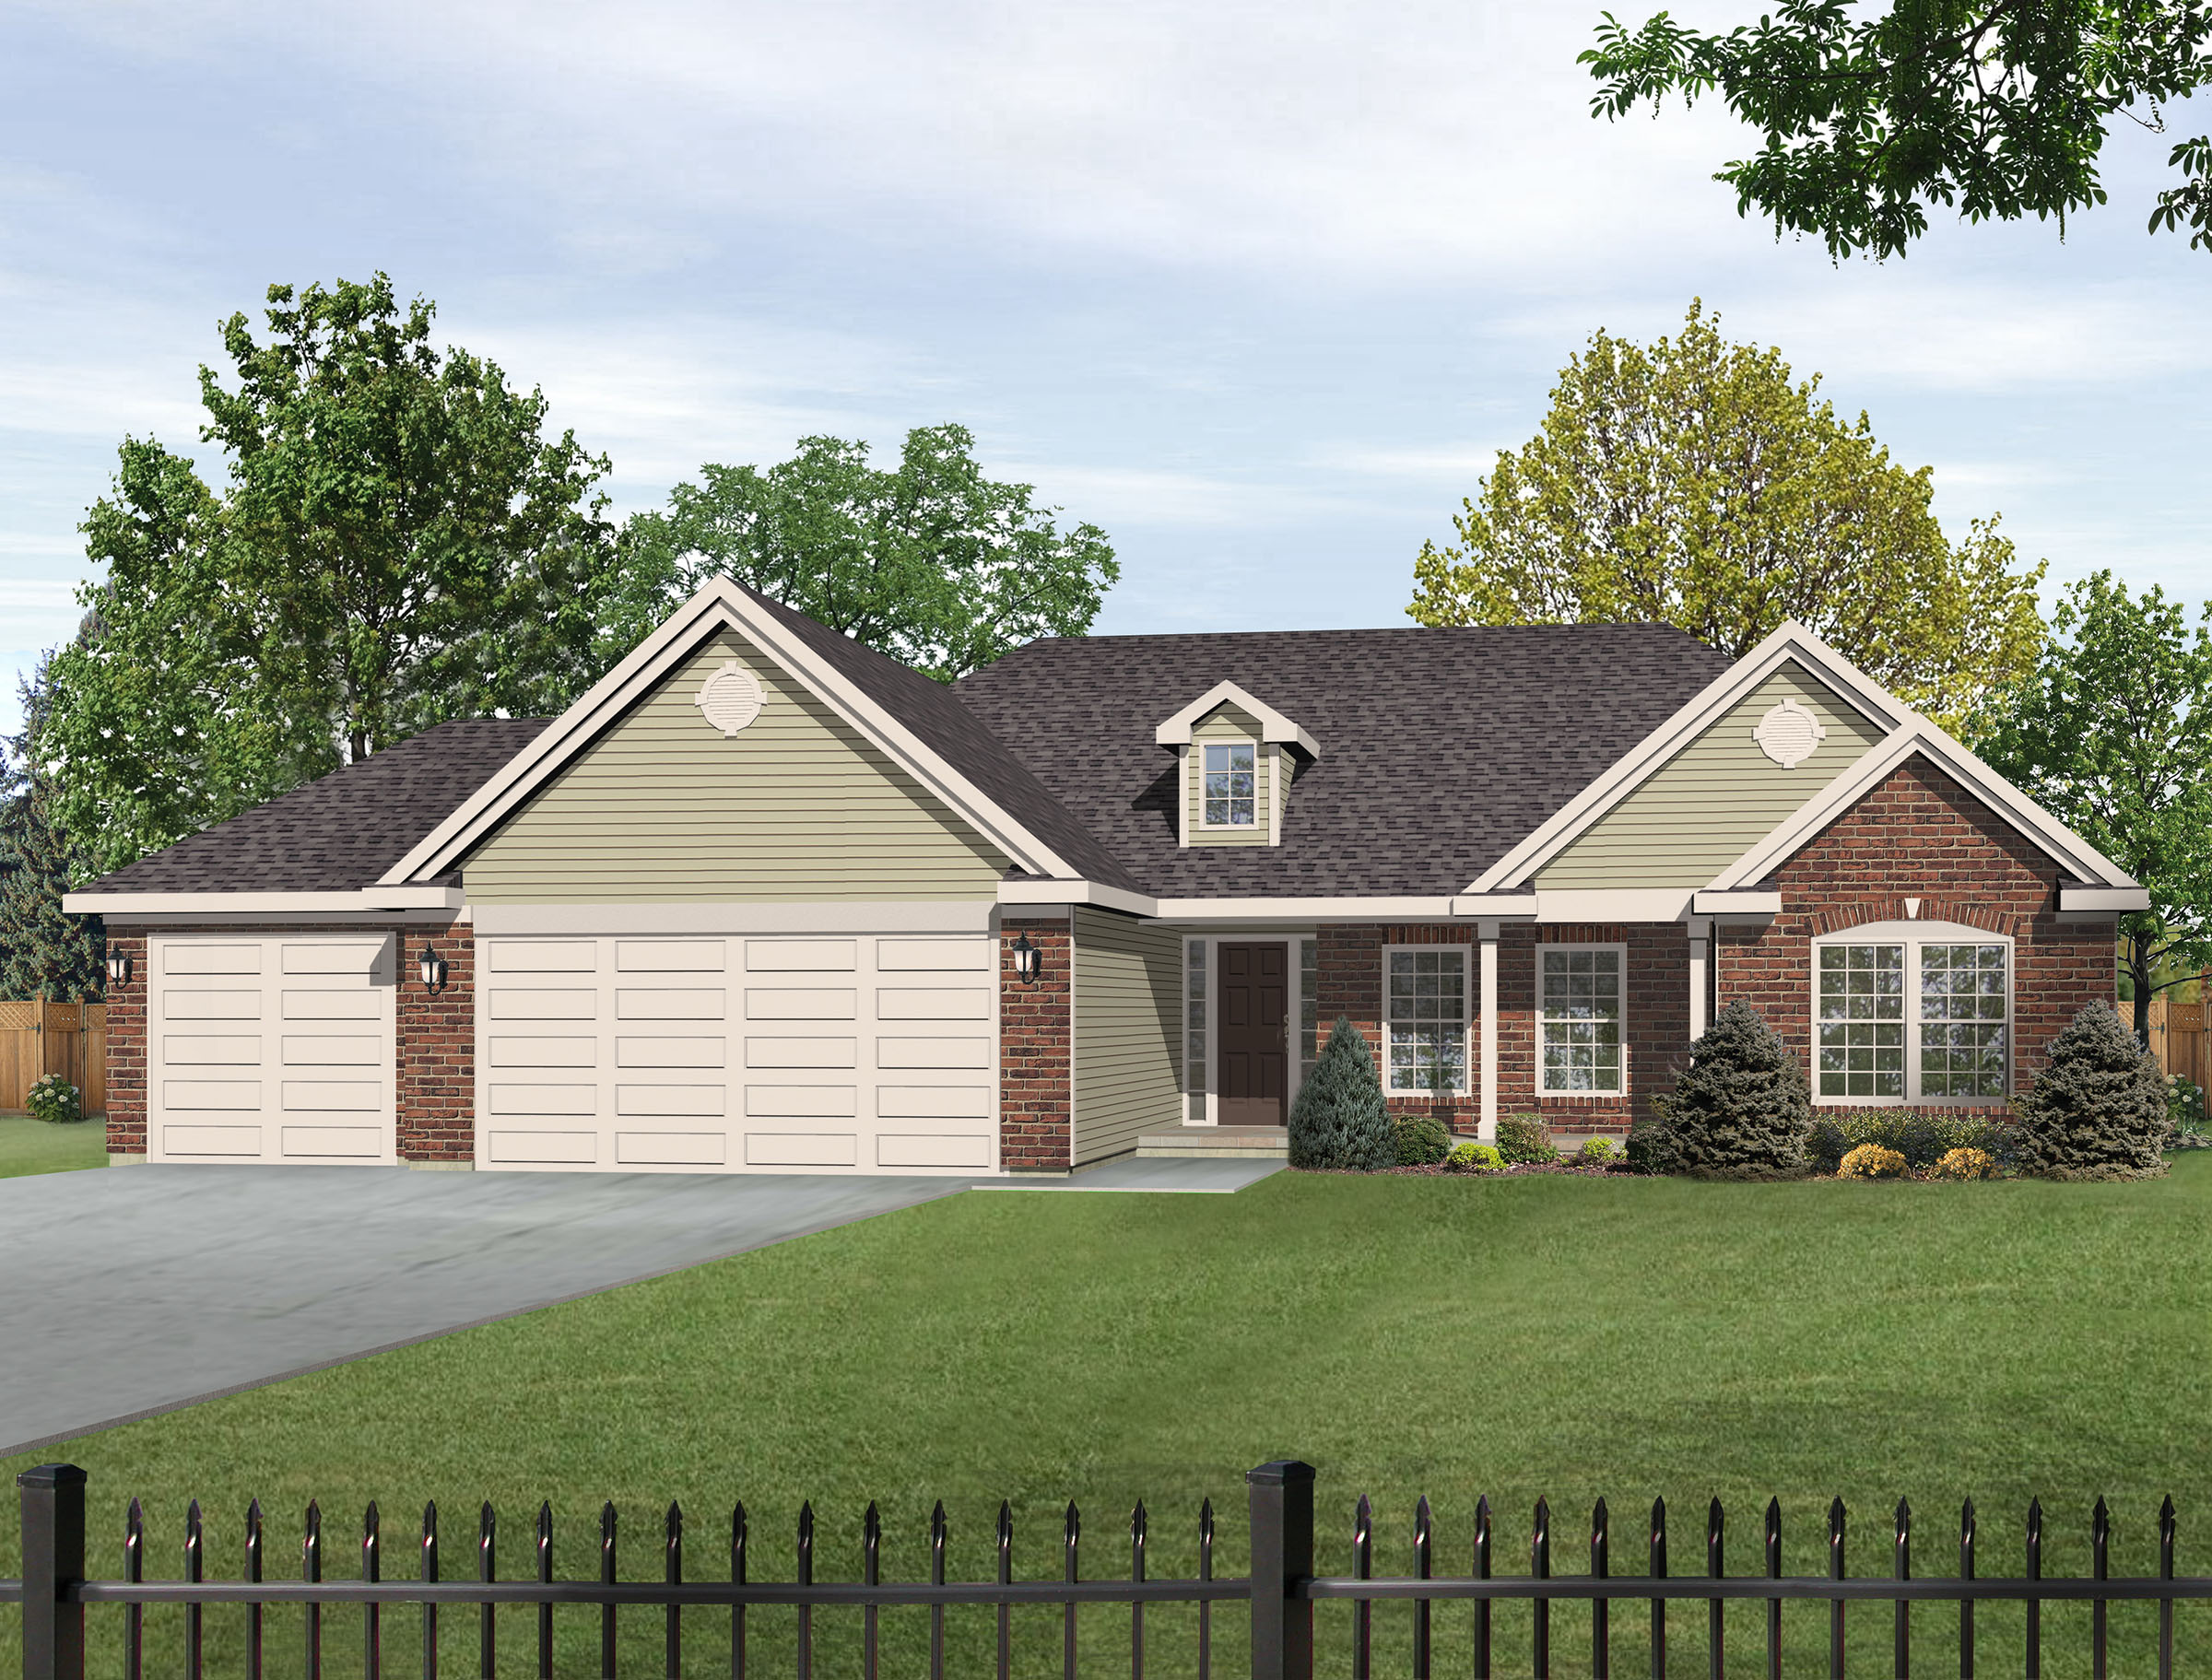 Ranch living with single dormer 22009sl 1st floor for Dormer house plans designs